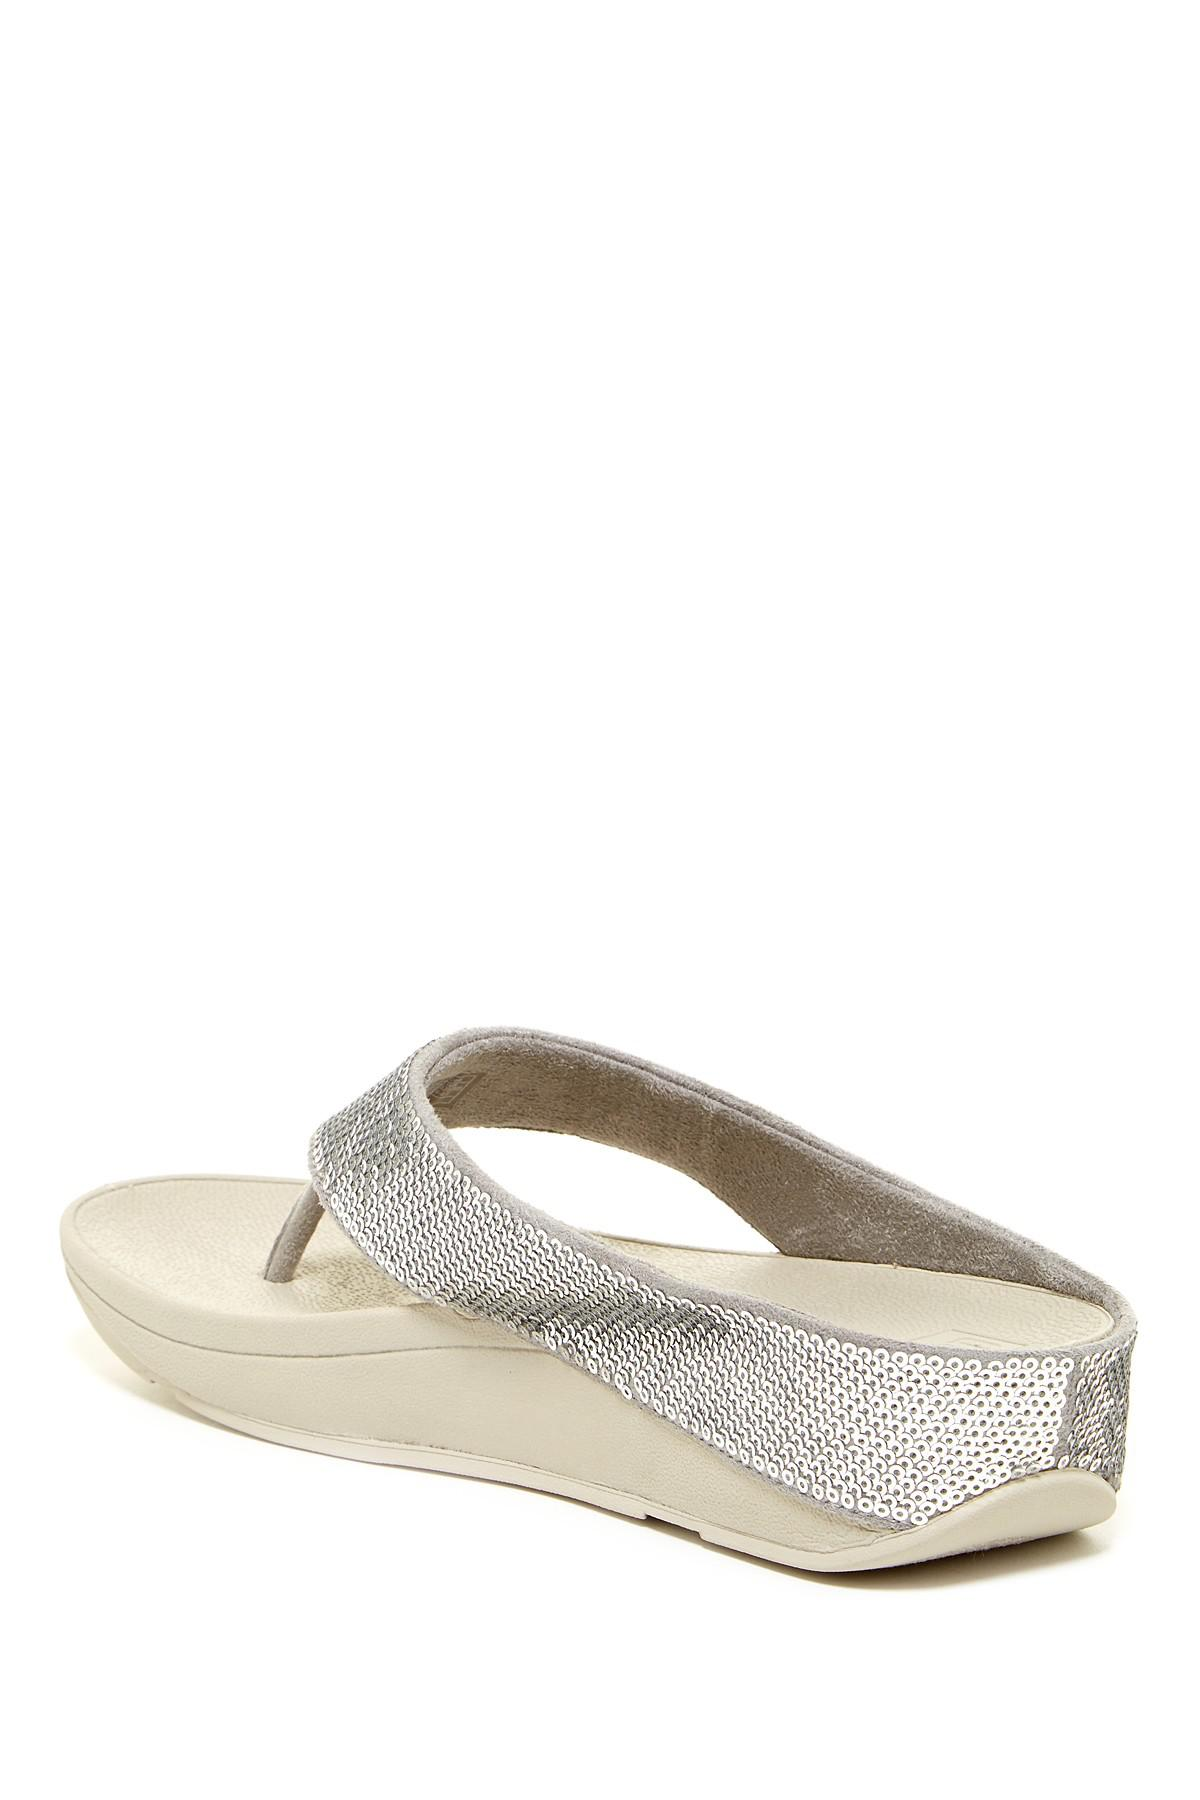 0b28297314892a Lyst - Fitflop Ringer Sequined Wedge Flip Flop in Metallic